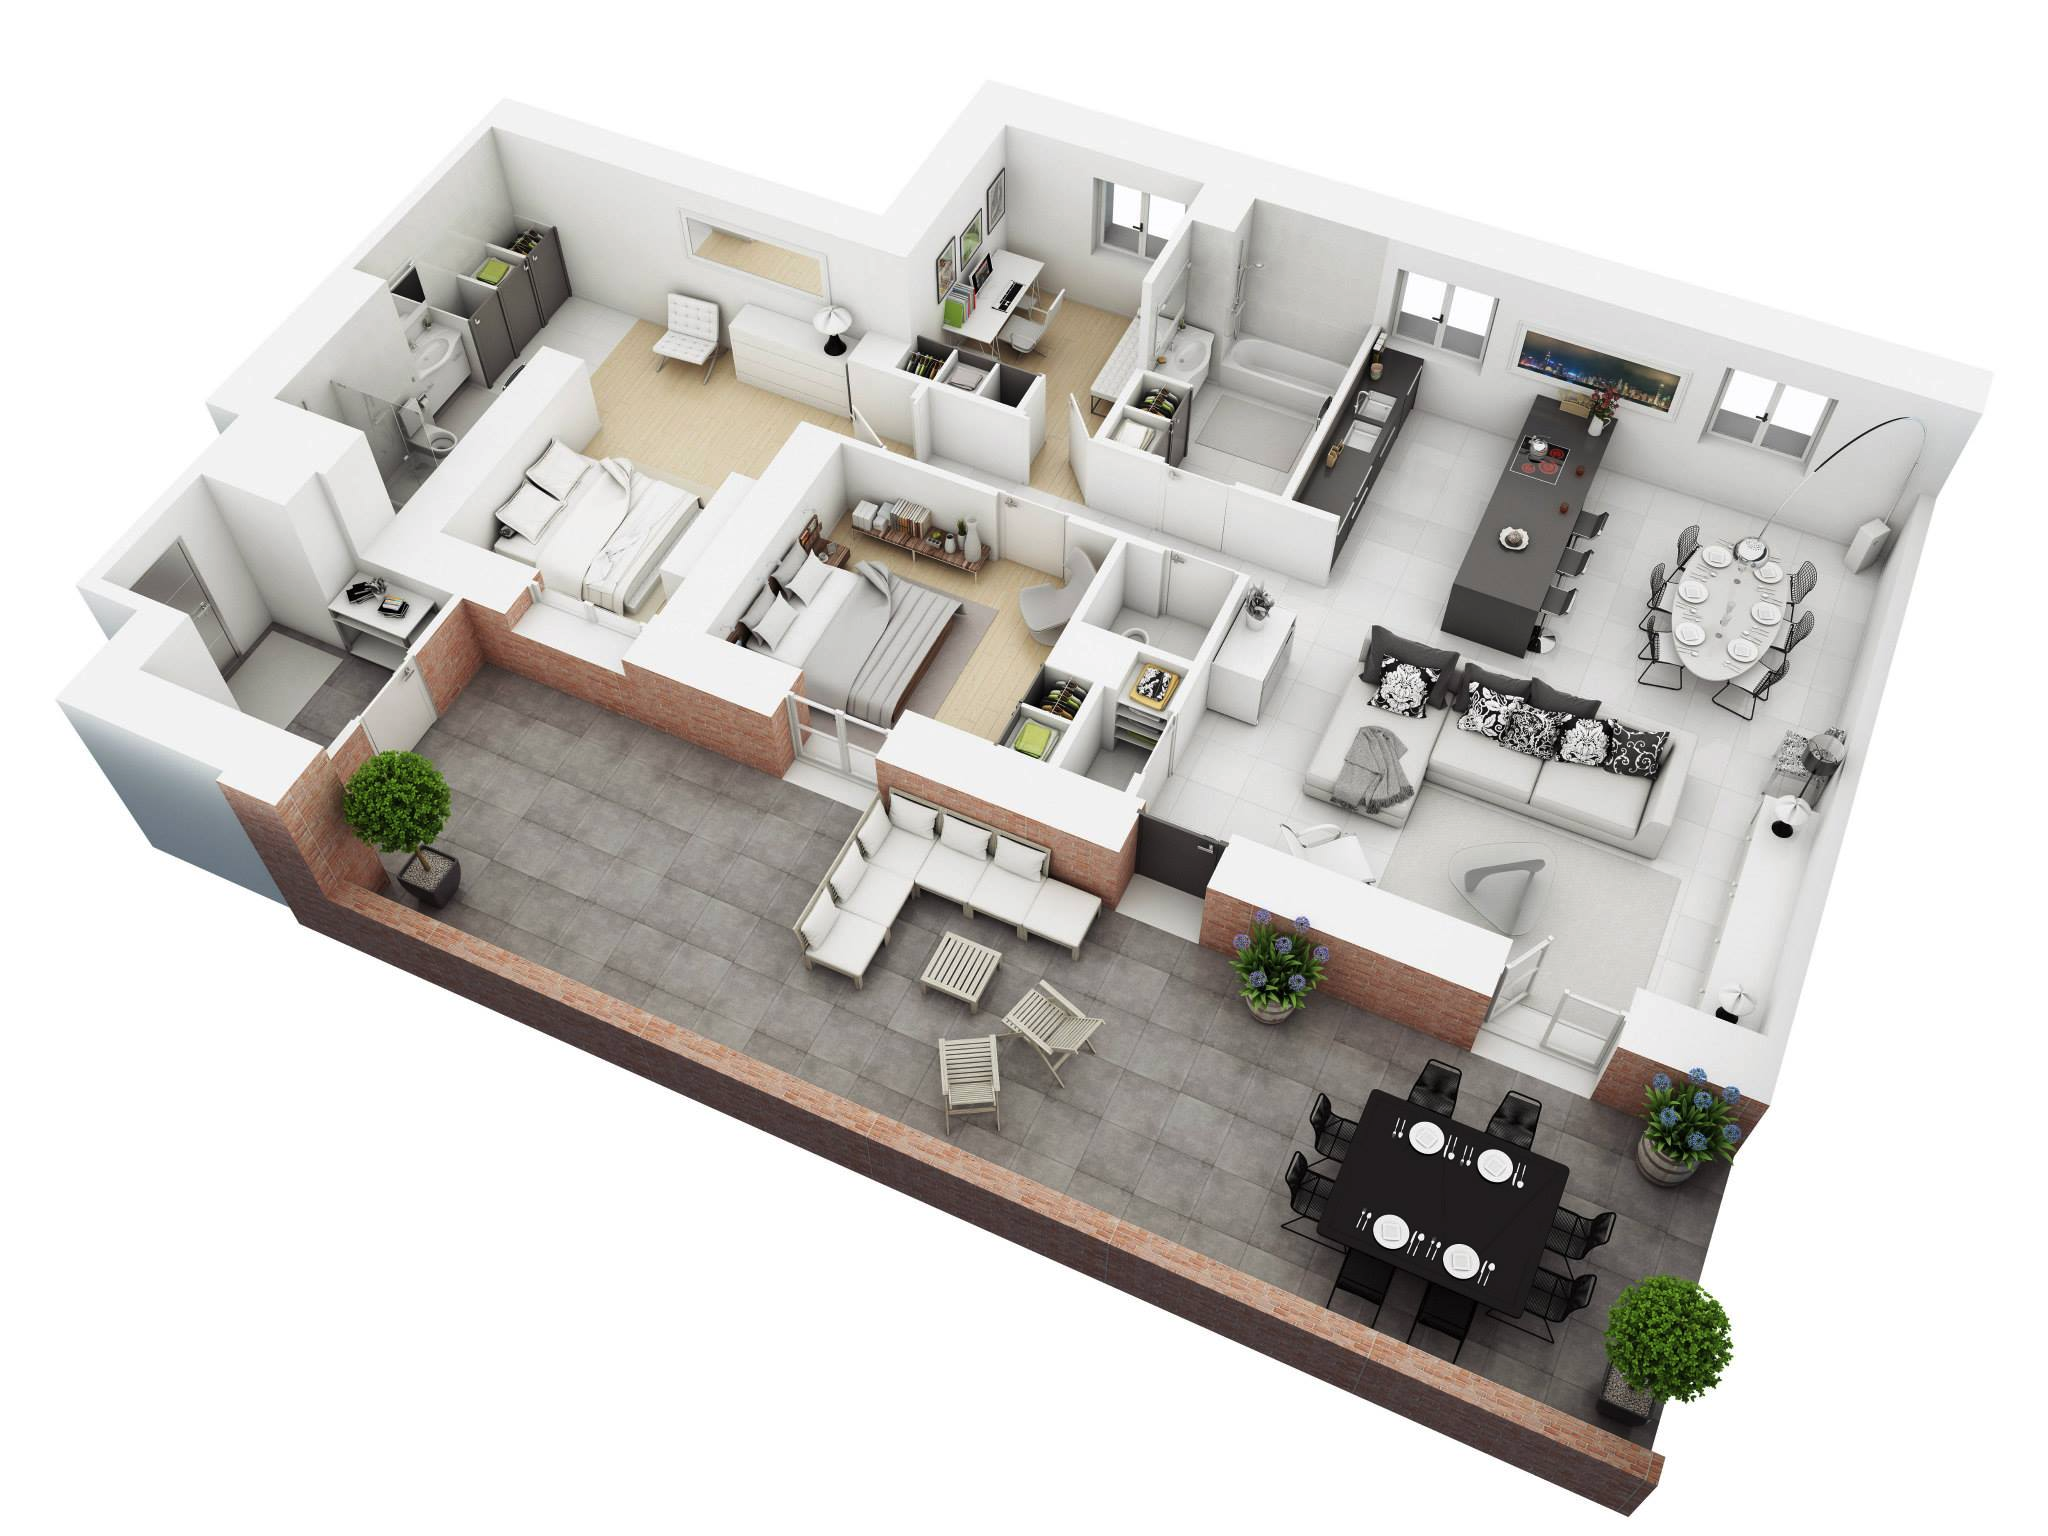 3d Home Floor Plan creating interactive floor plans using 3d images 25 More 3 Bedroom 3d Floor Plans